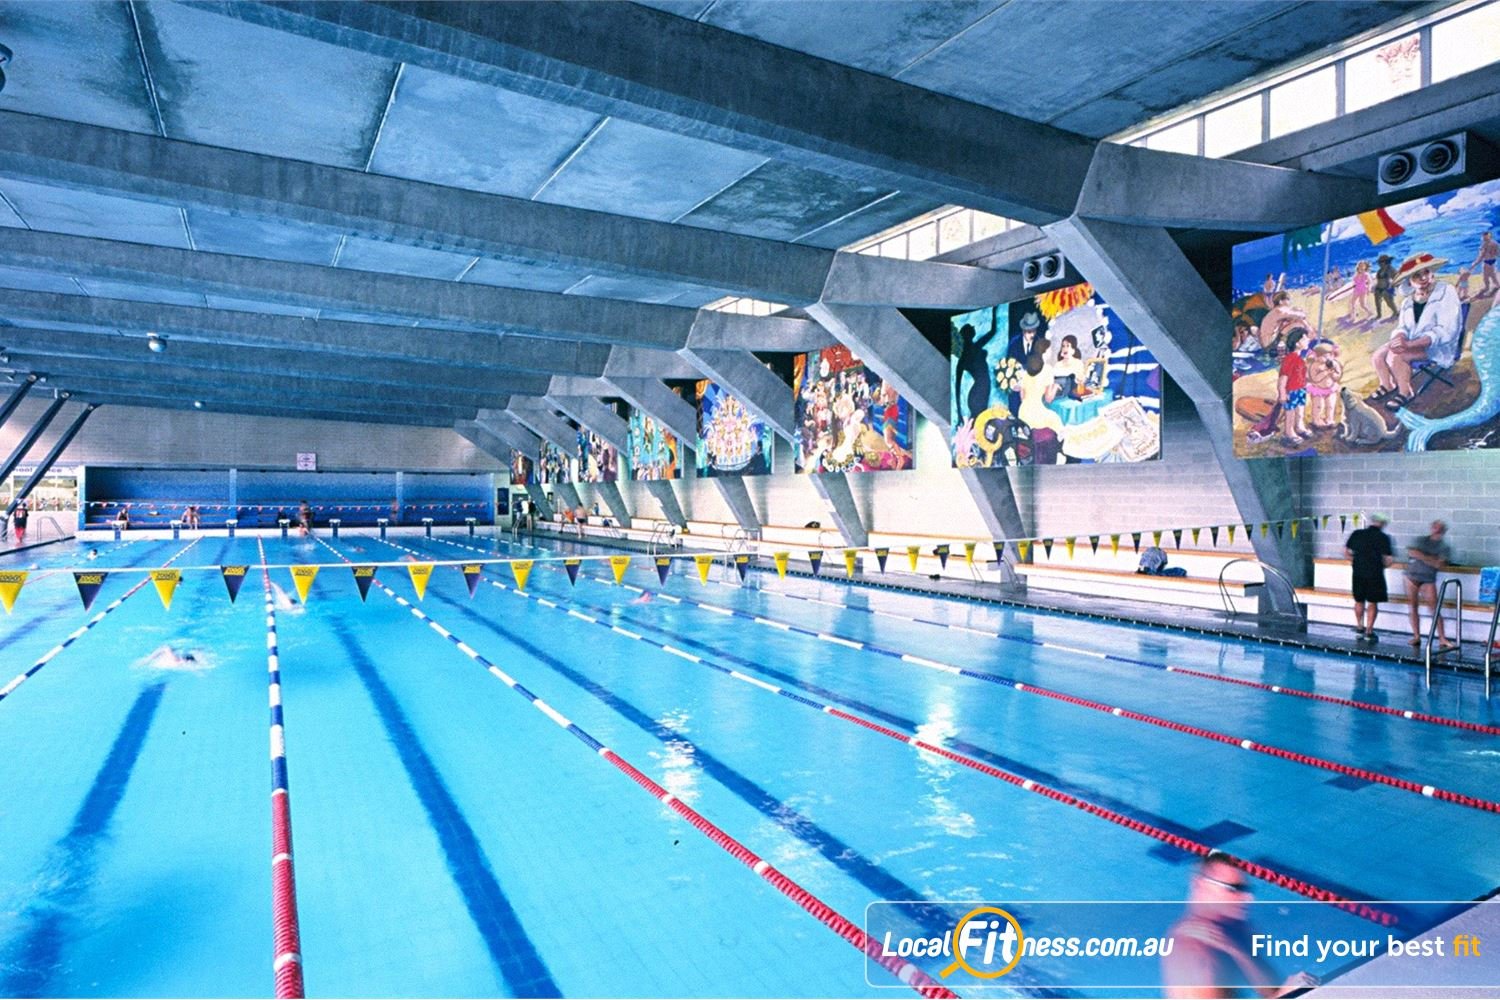 Cook and Phillip Park Aquatic and Fitness Centre Sydney Enjoy our Sydney swimming pool in the heart of the CBD.